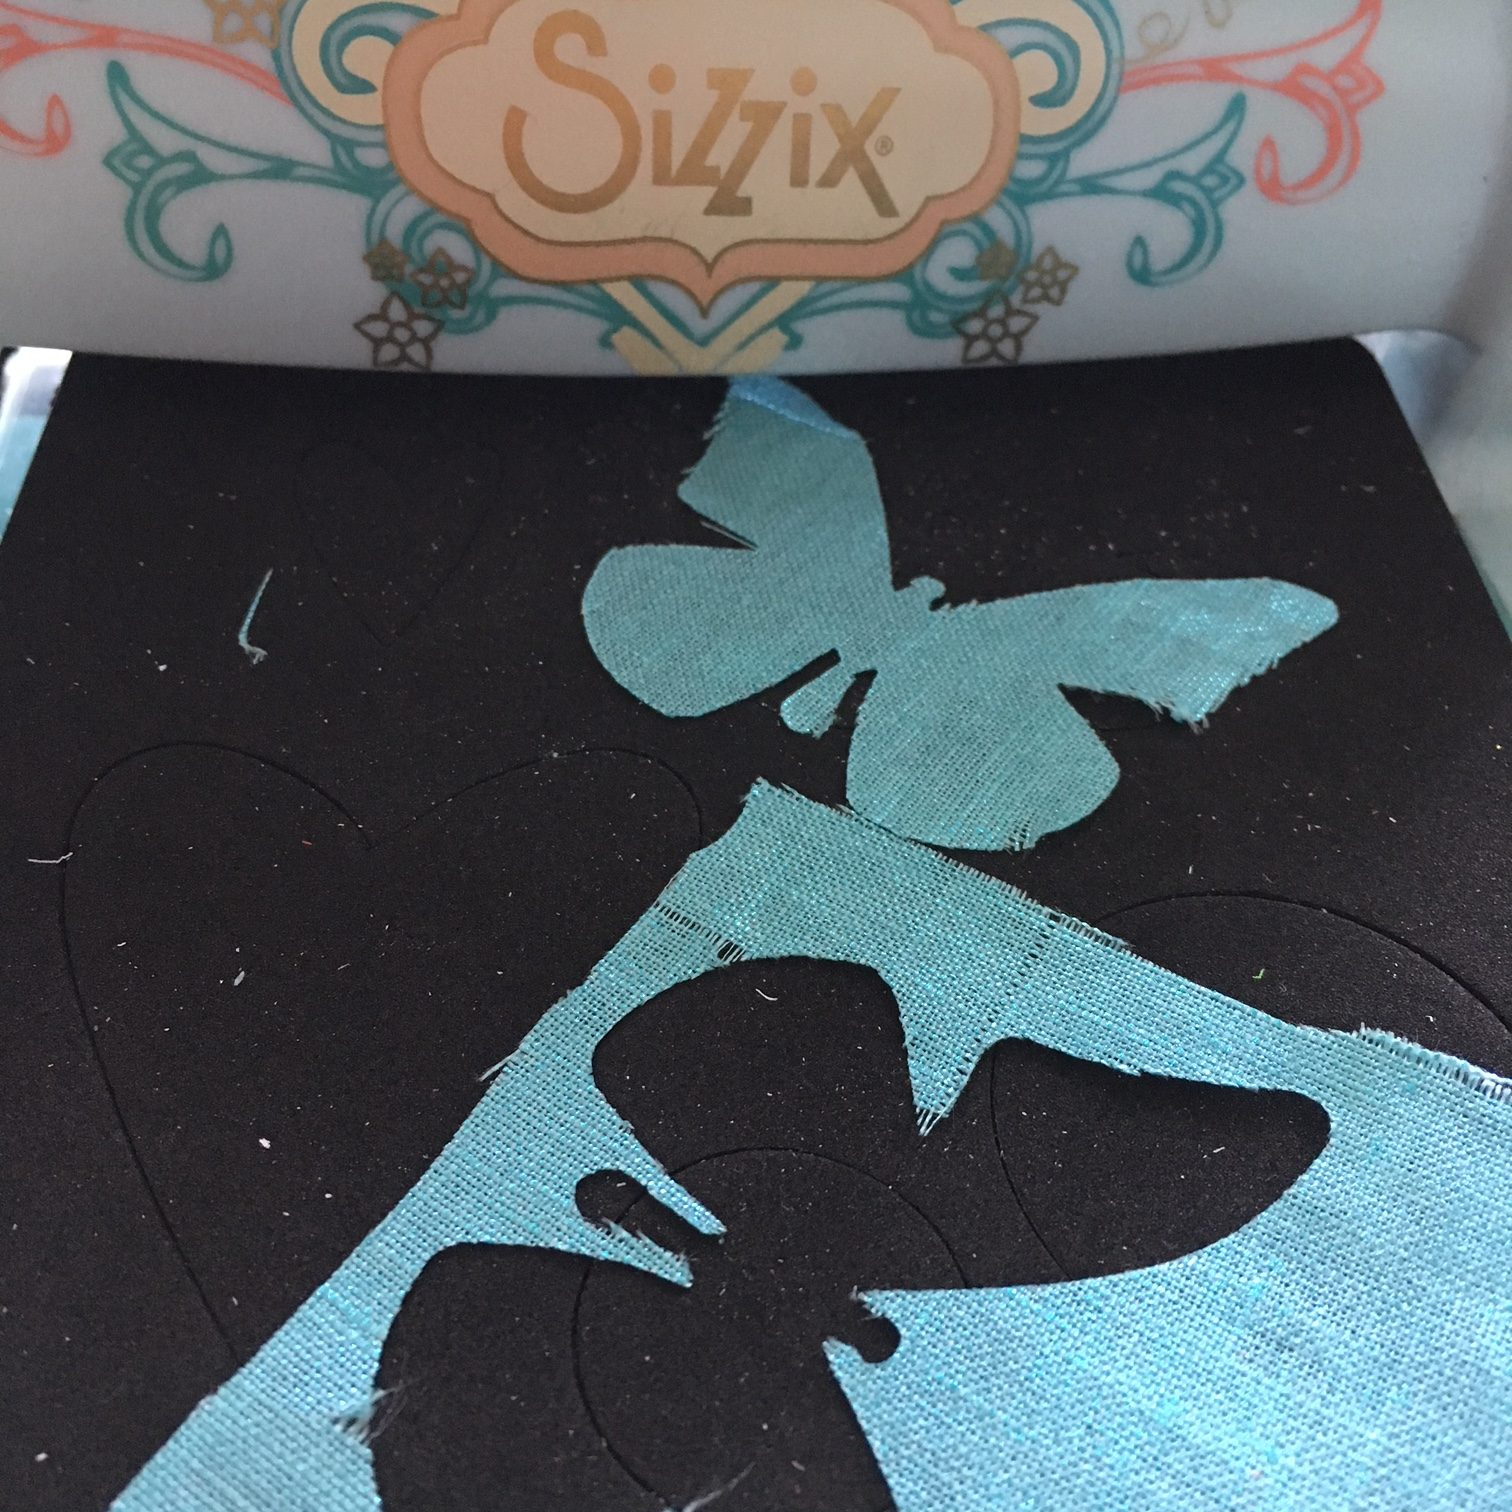 Sizzix cutting machine and silk butterfly in blue